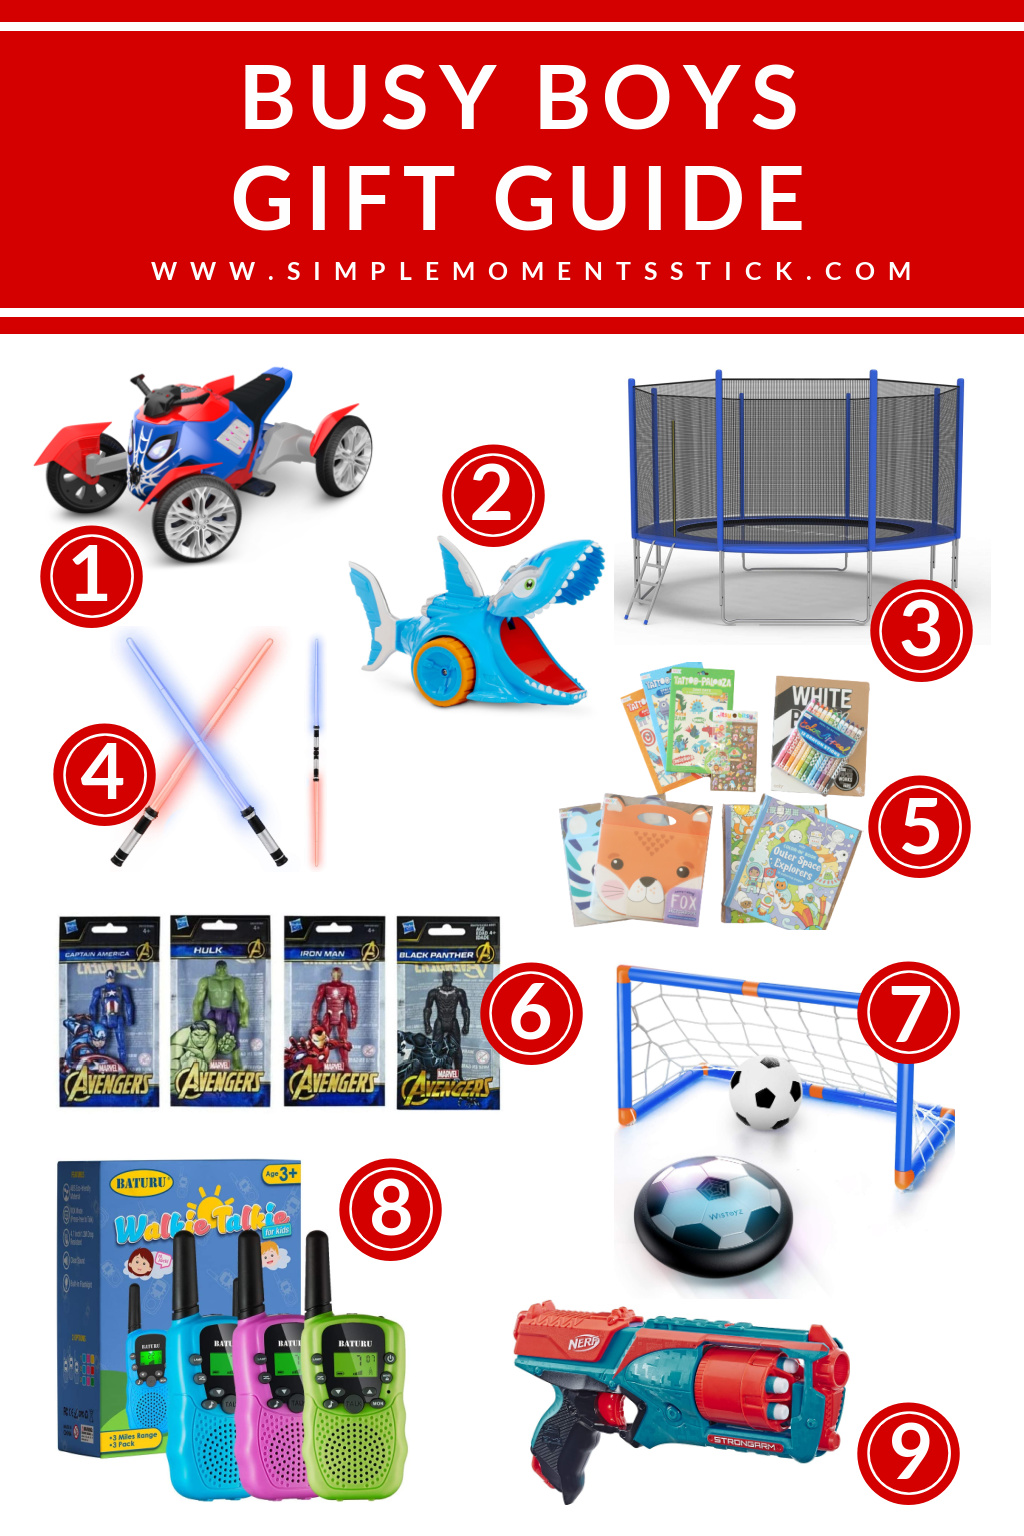 gift ideas for busy boys